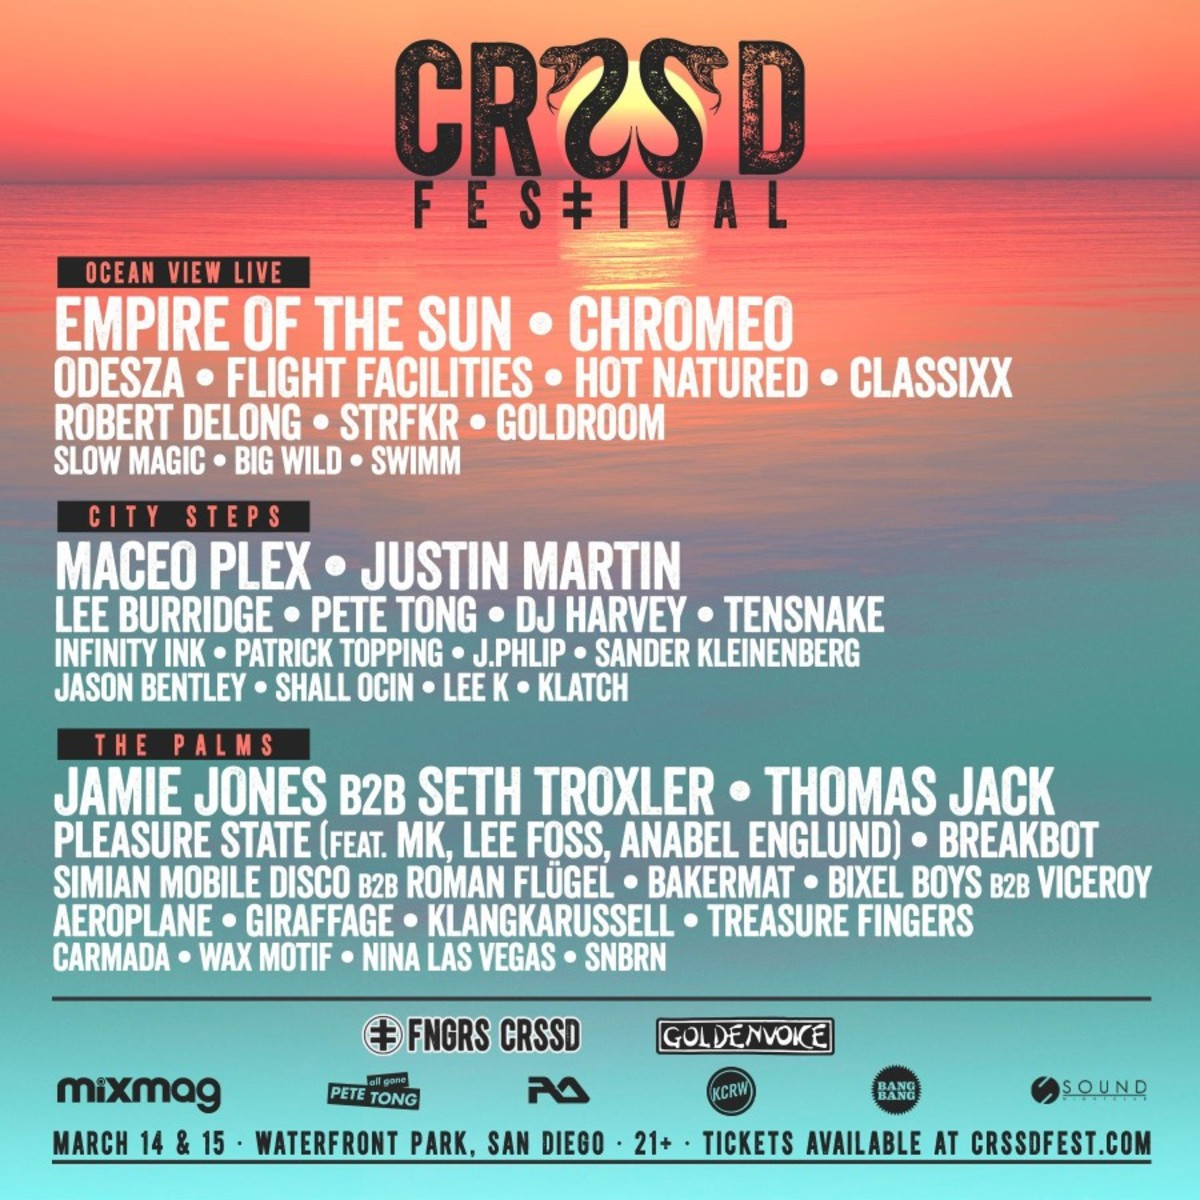 CRSSD Festival Fully Revealed With New Artists